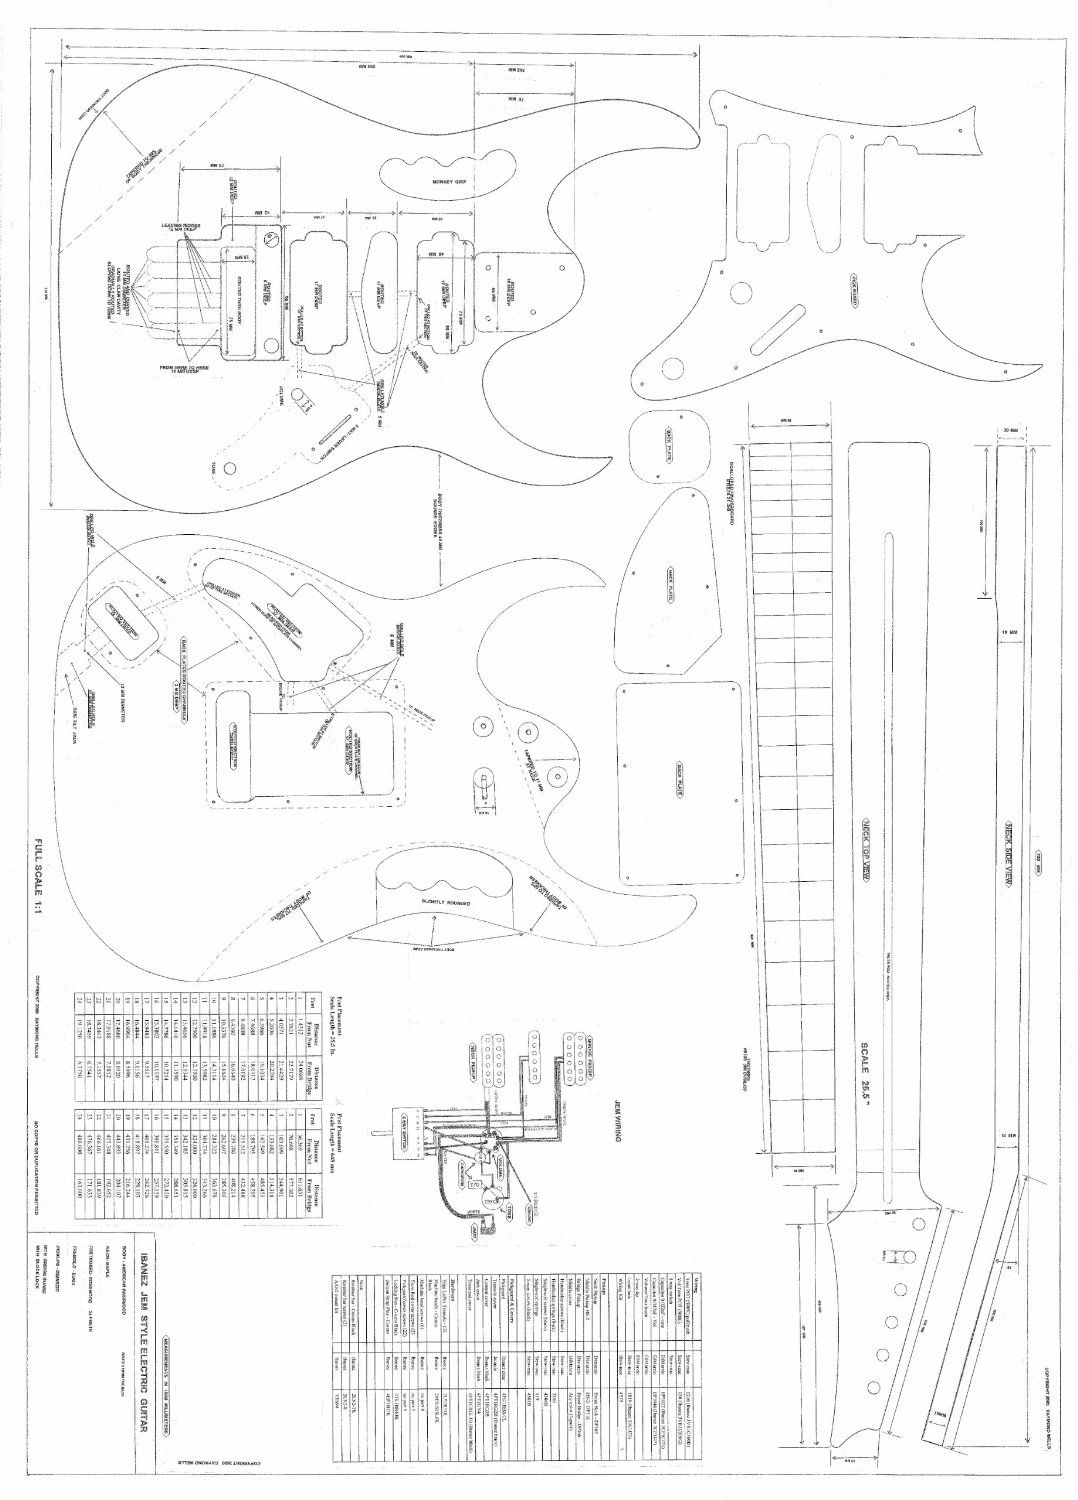 Pin De Rodrigo Brandao Em Guitar Bass Plans